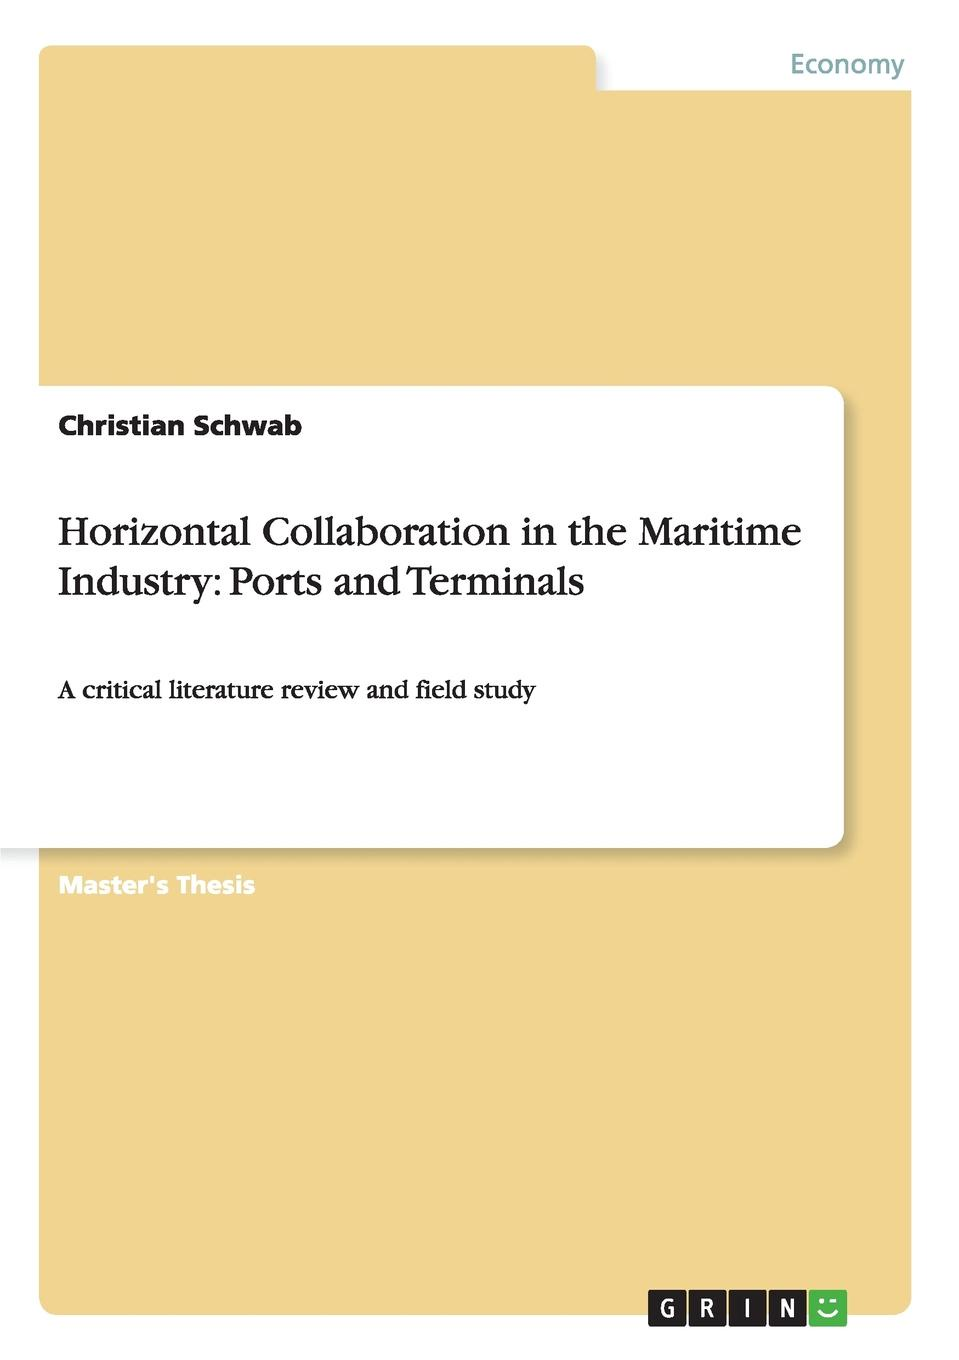 Christian Schwab Horizontal Collaboration in the Maritime Industry. Ports and Terminals